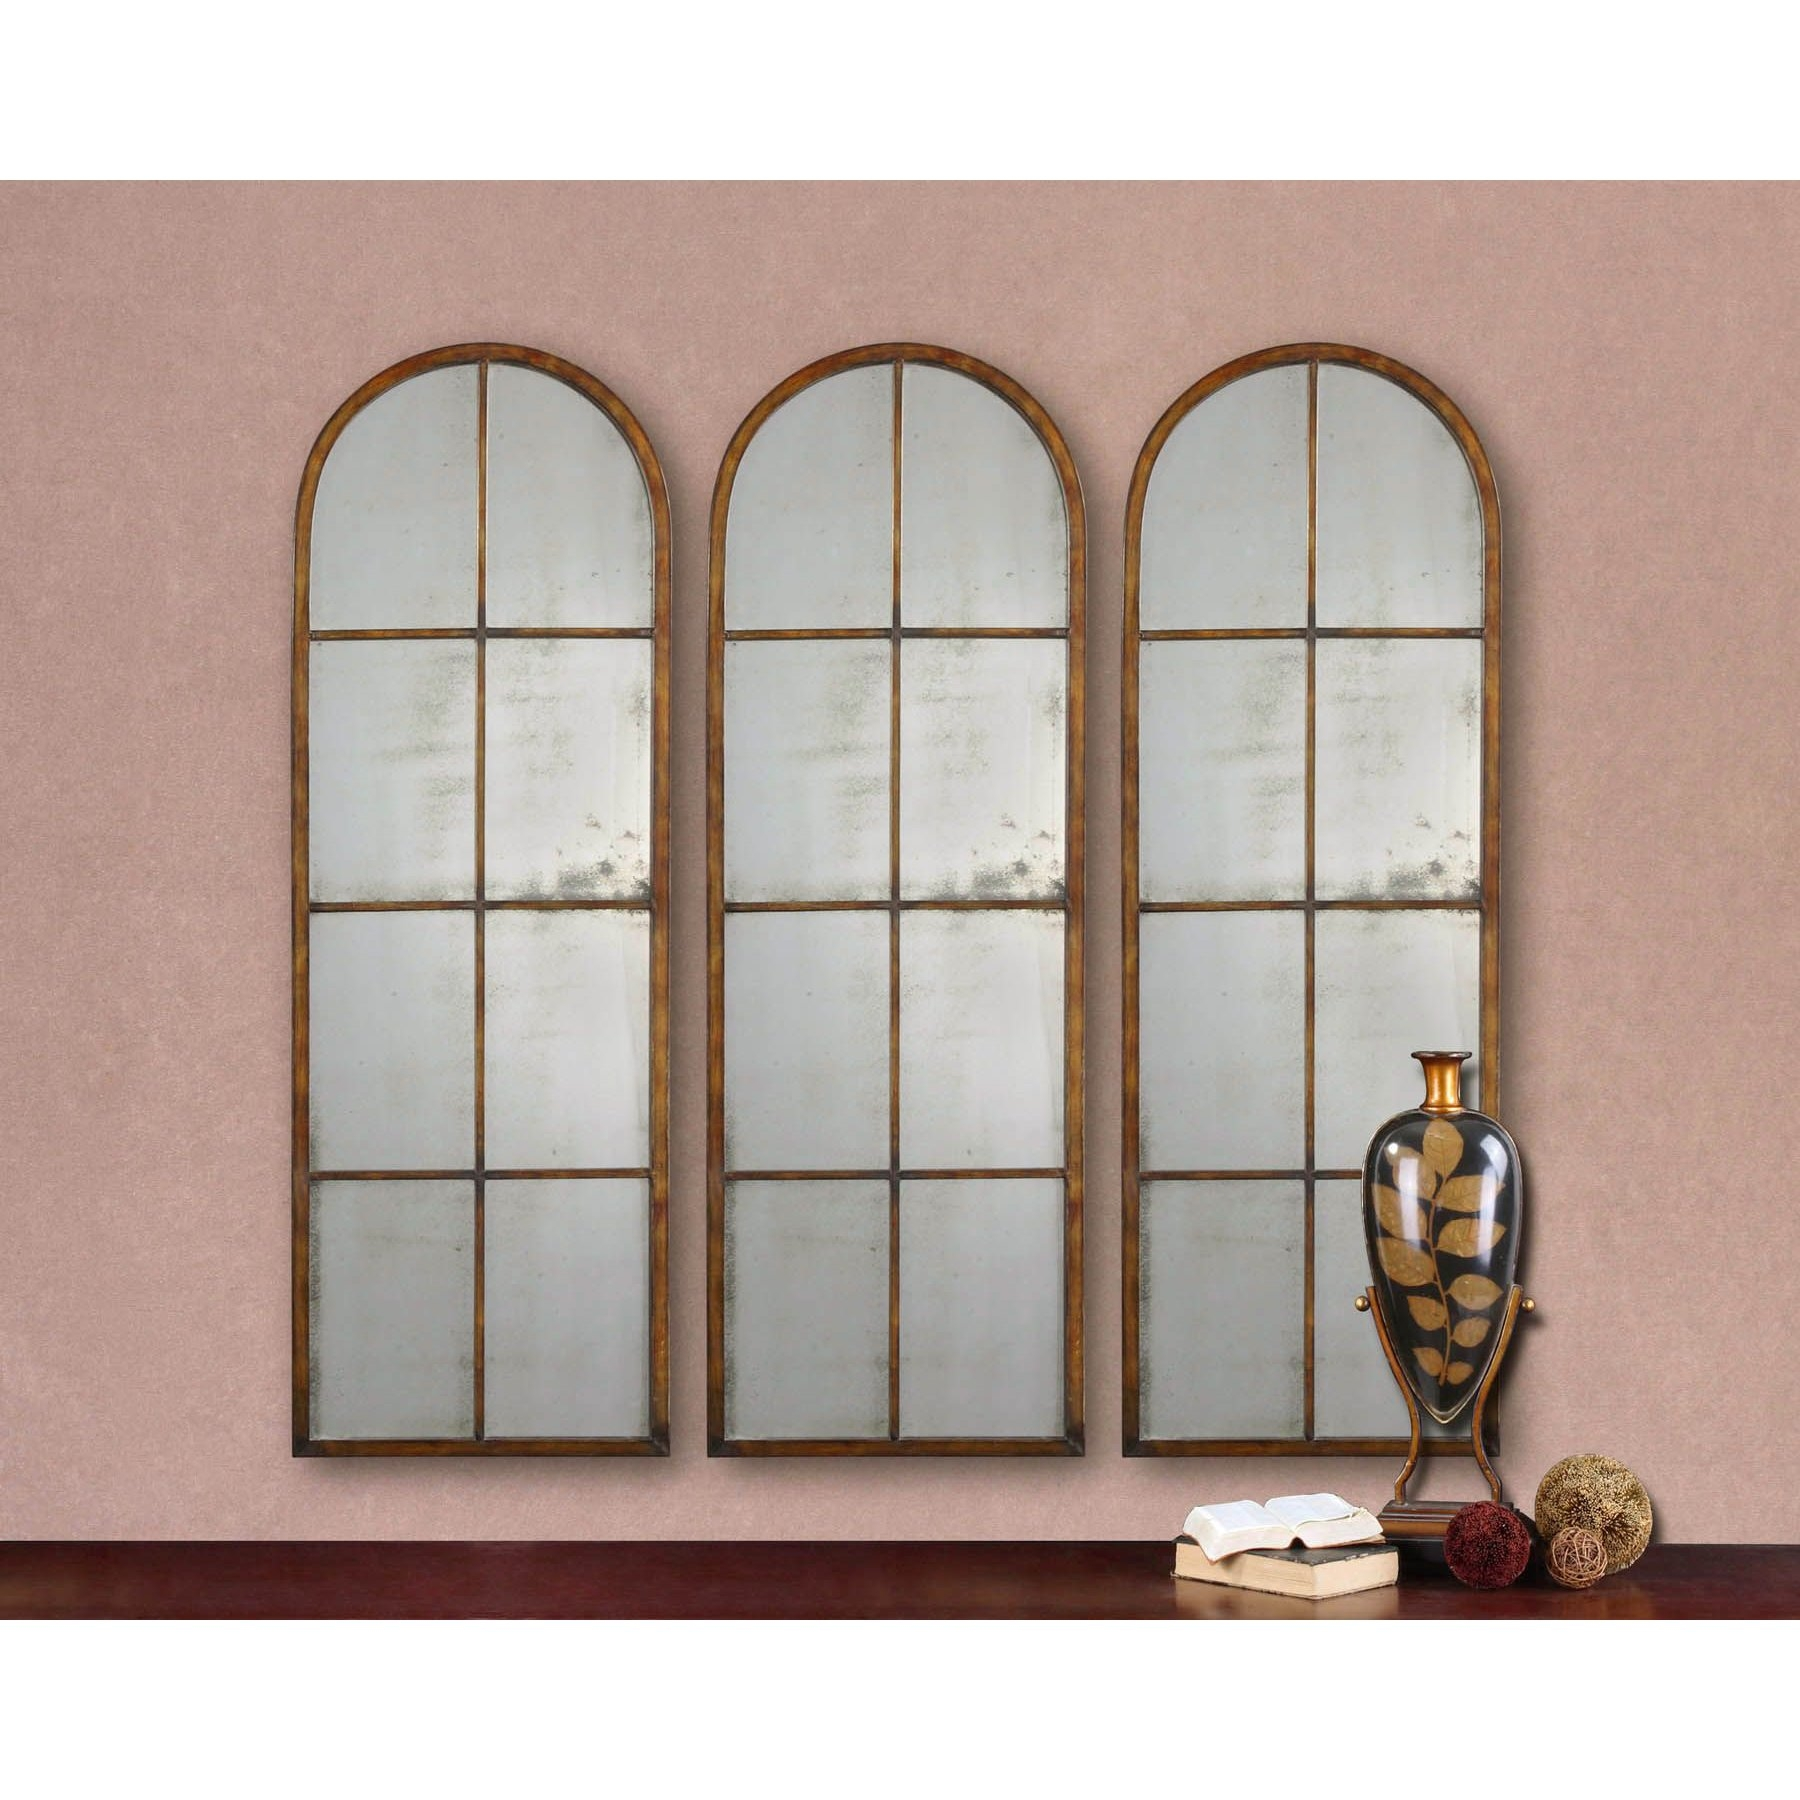 Featured Image of Arched Wall Mirror